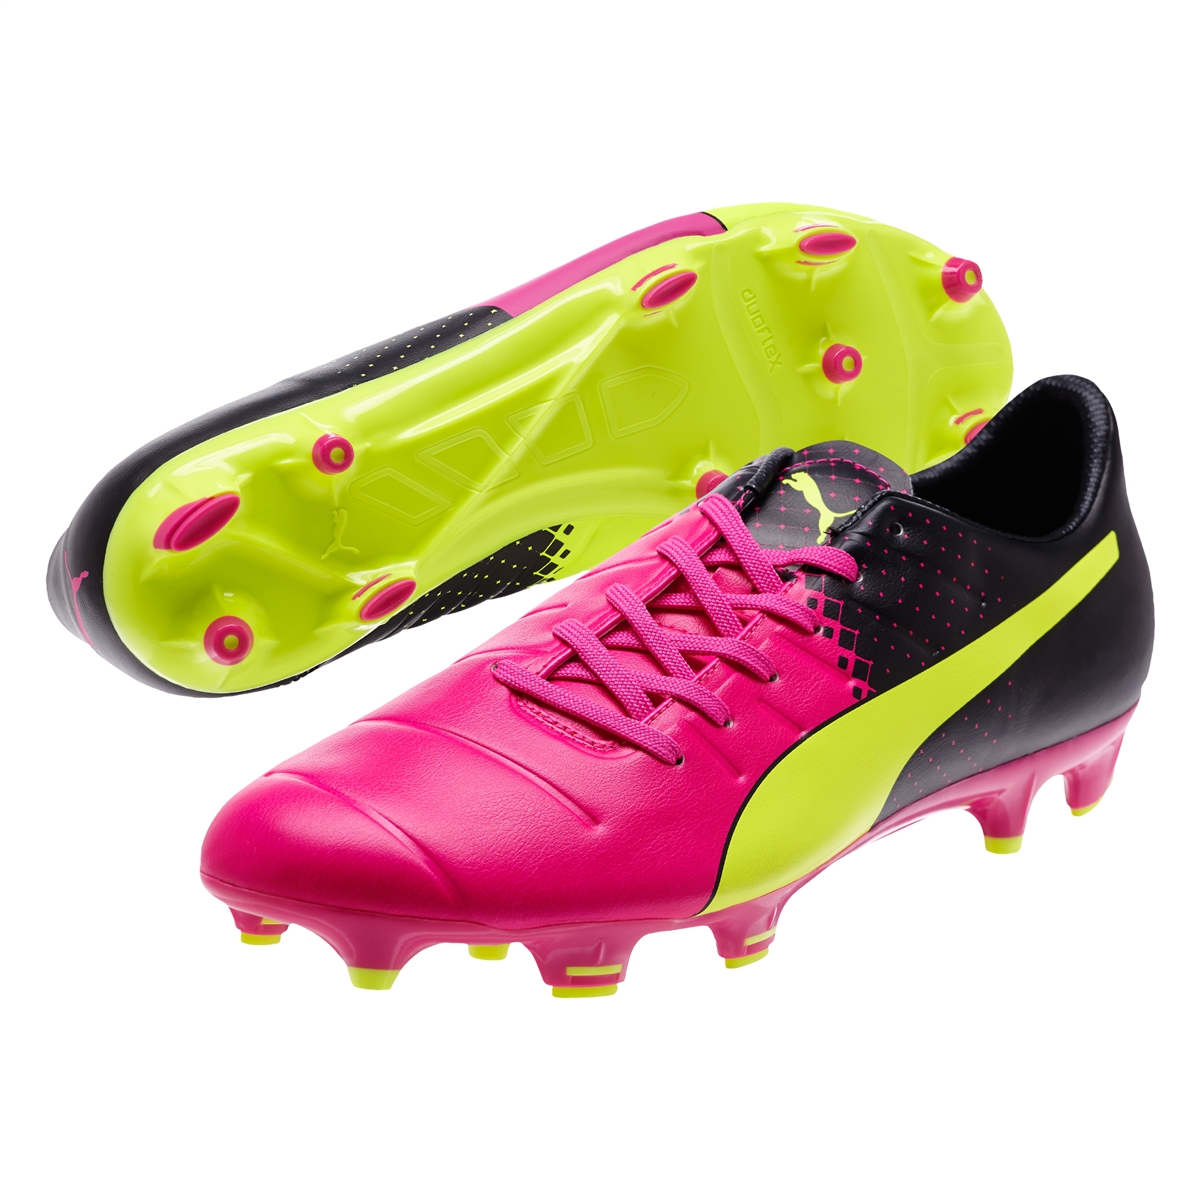 Puma evoPOWER 3.3 Tricks FG Soccer Cleats (Pink GloSafety YellowBlack)